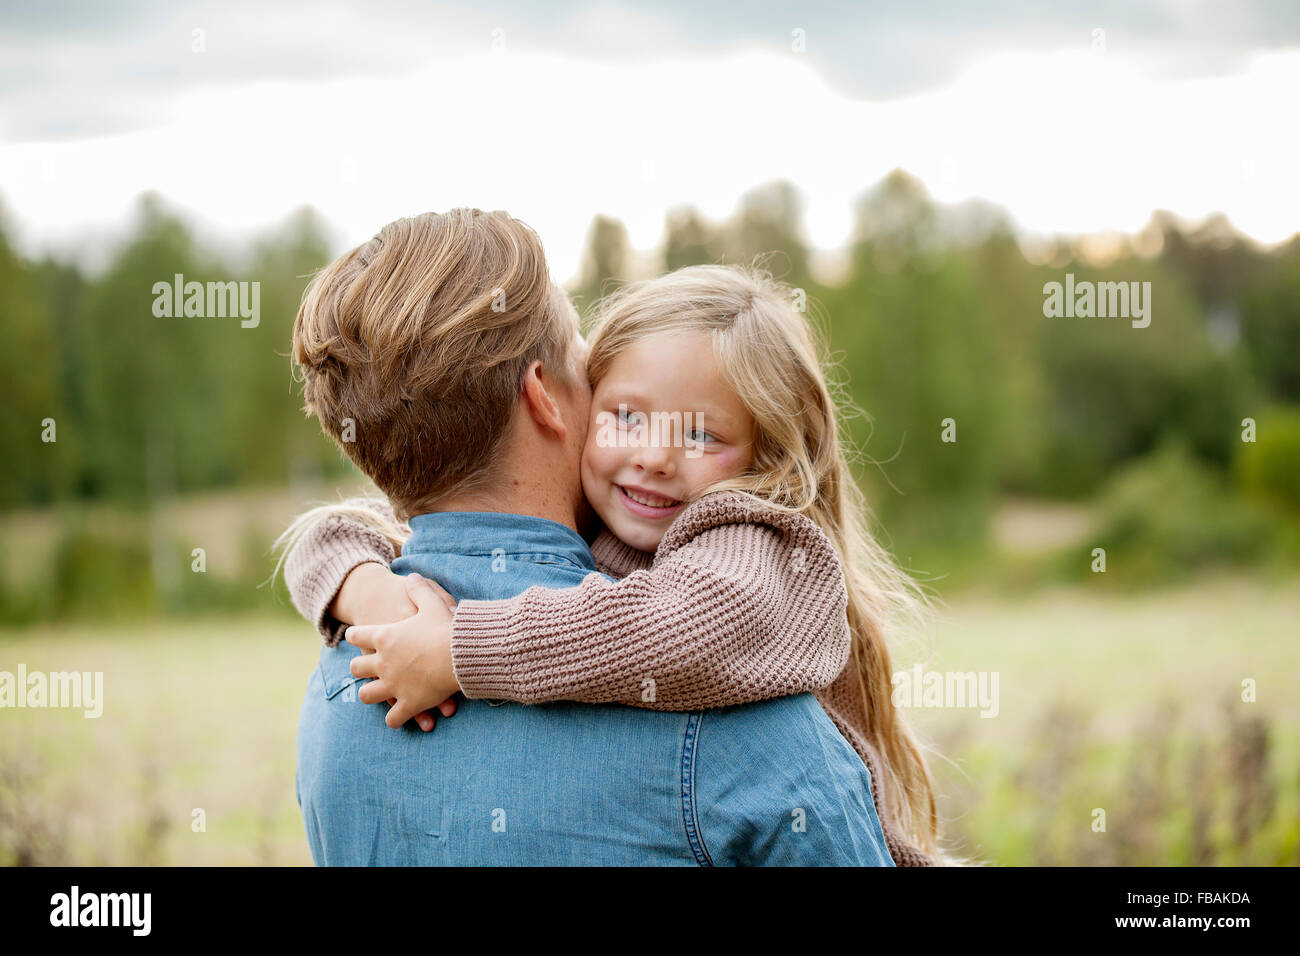 La Finlande, Uusimaa, Raasepori, Karjaa, Young Girl (6-7) hugging son père Photo Stock